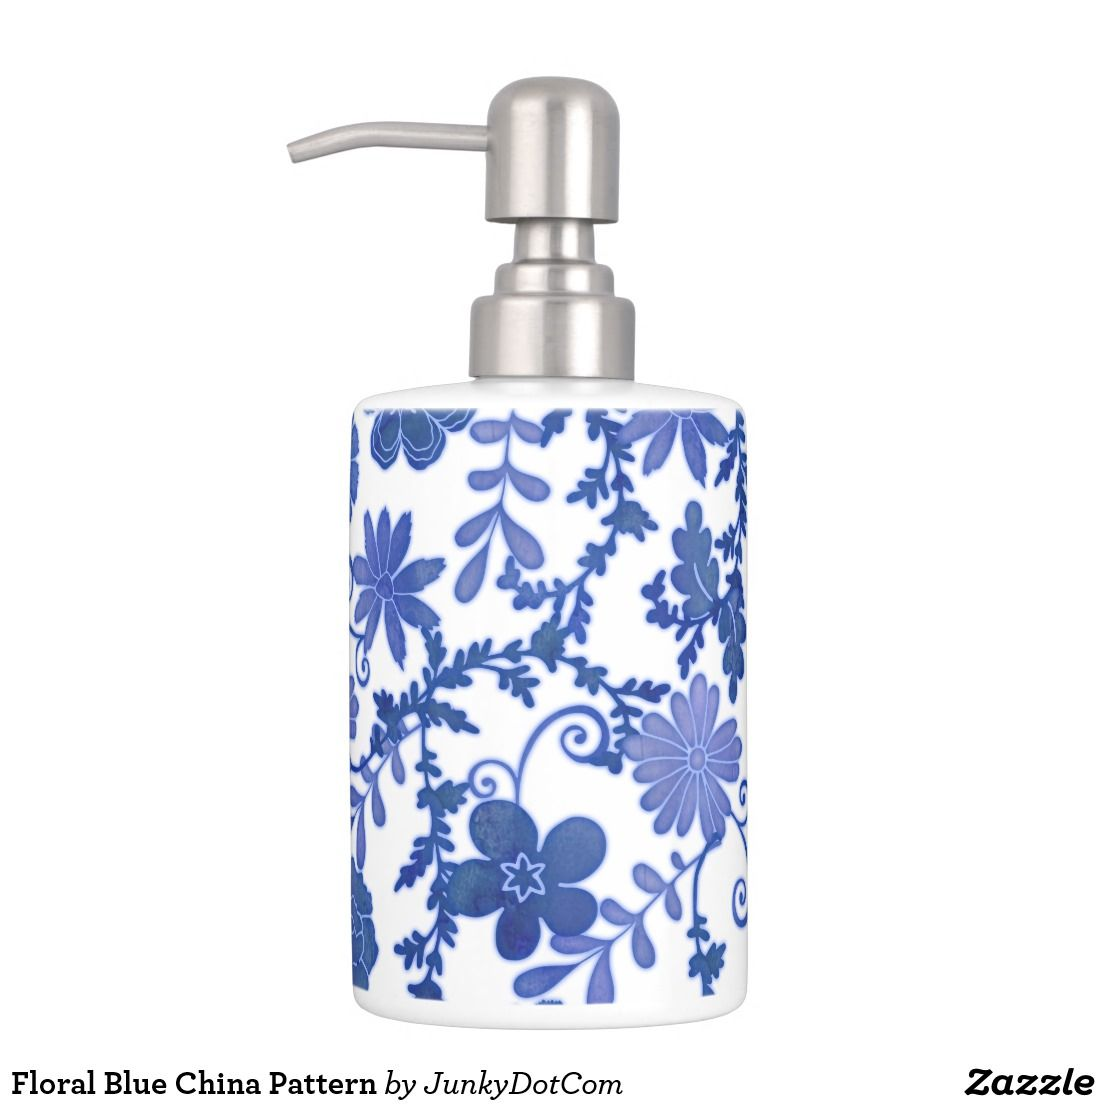 Floral Blue China Pattern Soap Dispenser And Toothbrush Holder May 8 2017 Spring Junkydotcom Bath Accessories Set Bath Accessories Blue Bath